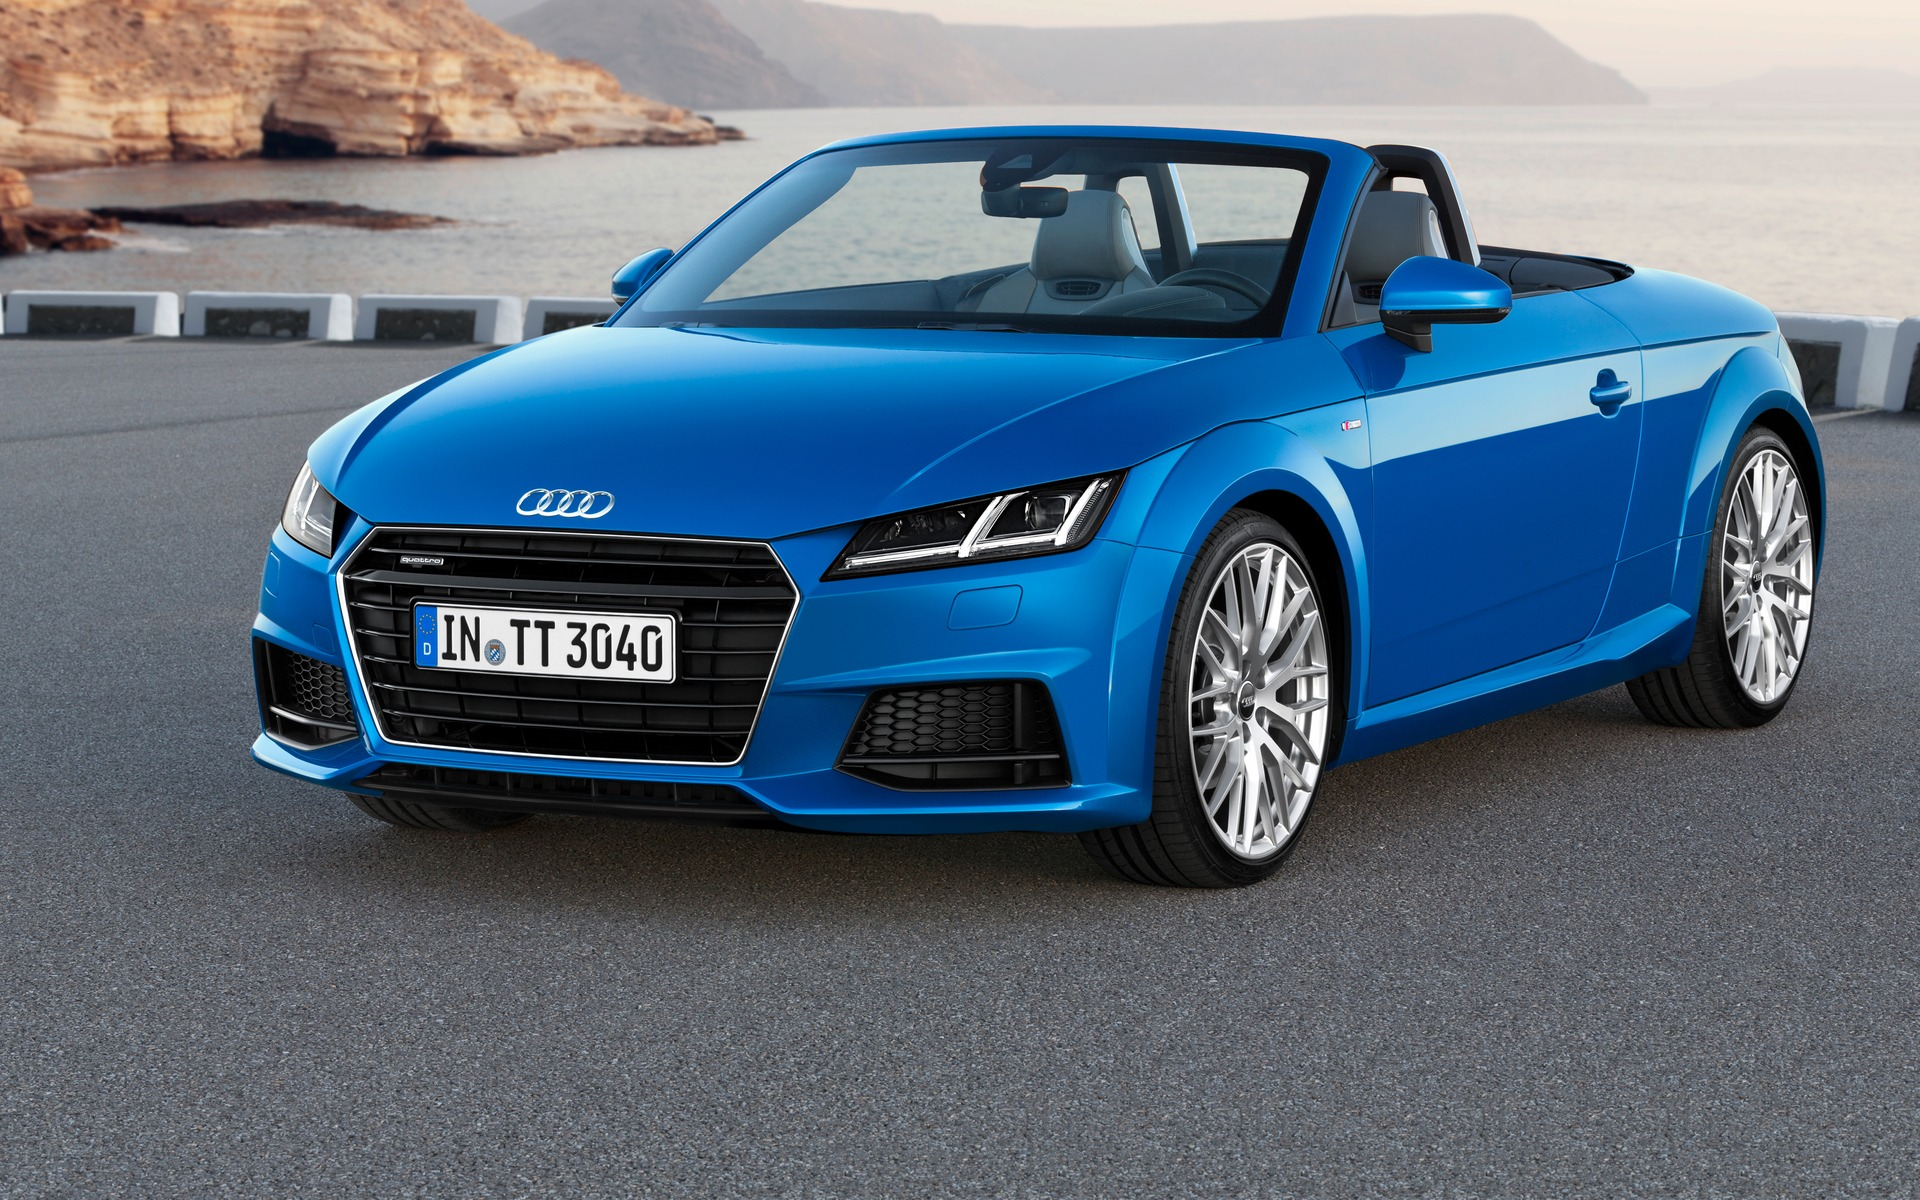 2016 audi tt coupe price engine full technical specifications the car guide. Black Bedroom Furniture Sets. Home Design Ideas